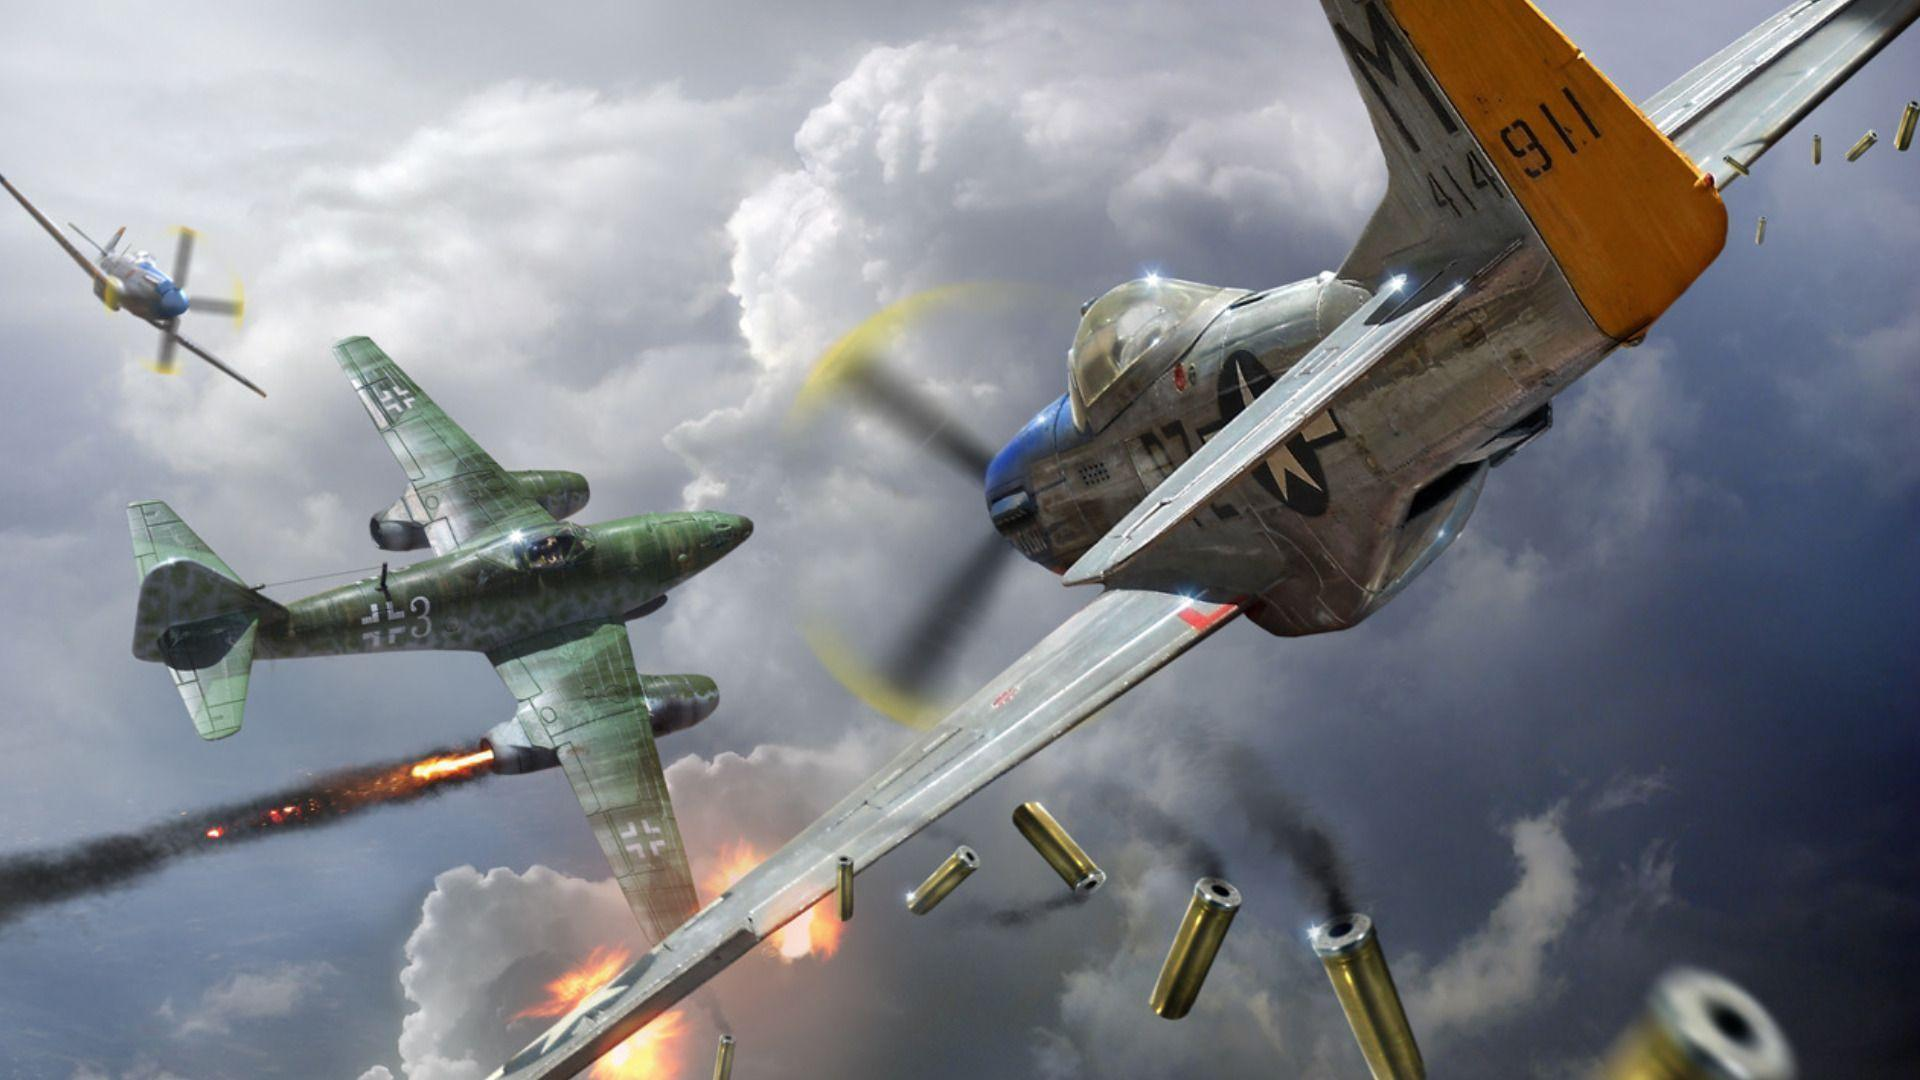 Vehicles For > Ww2 Military Aircraft Wallpapers